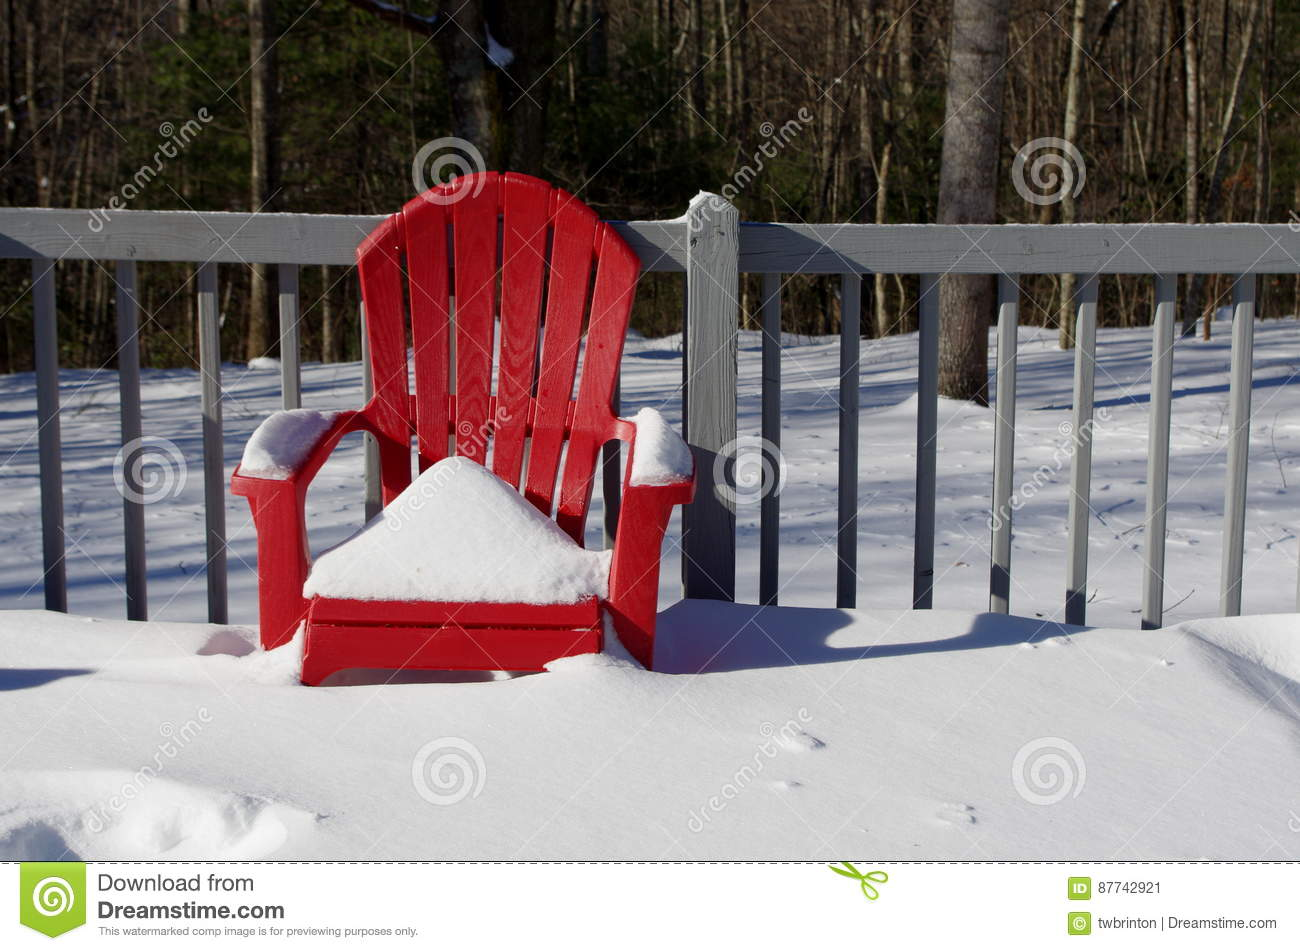 Download A Snow Covered Red Chair On A Wooden Deck Stock Image - Image of sitting, snow: 87742921